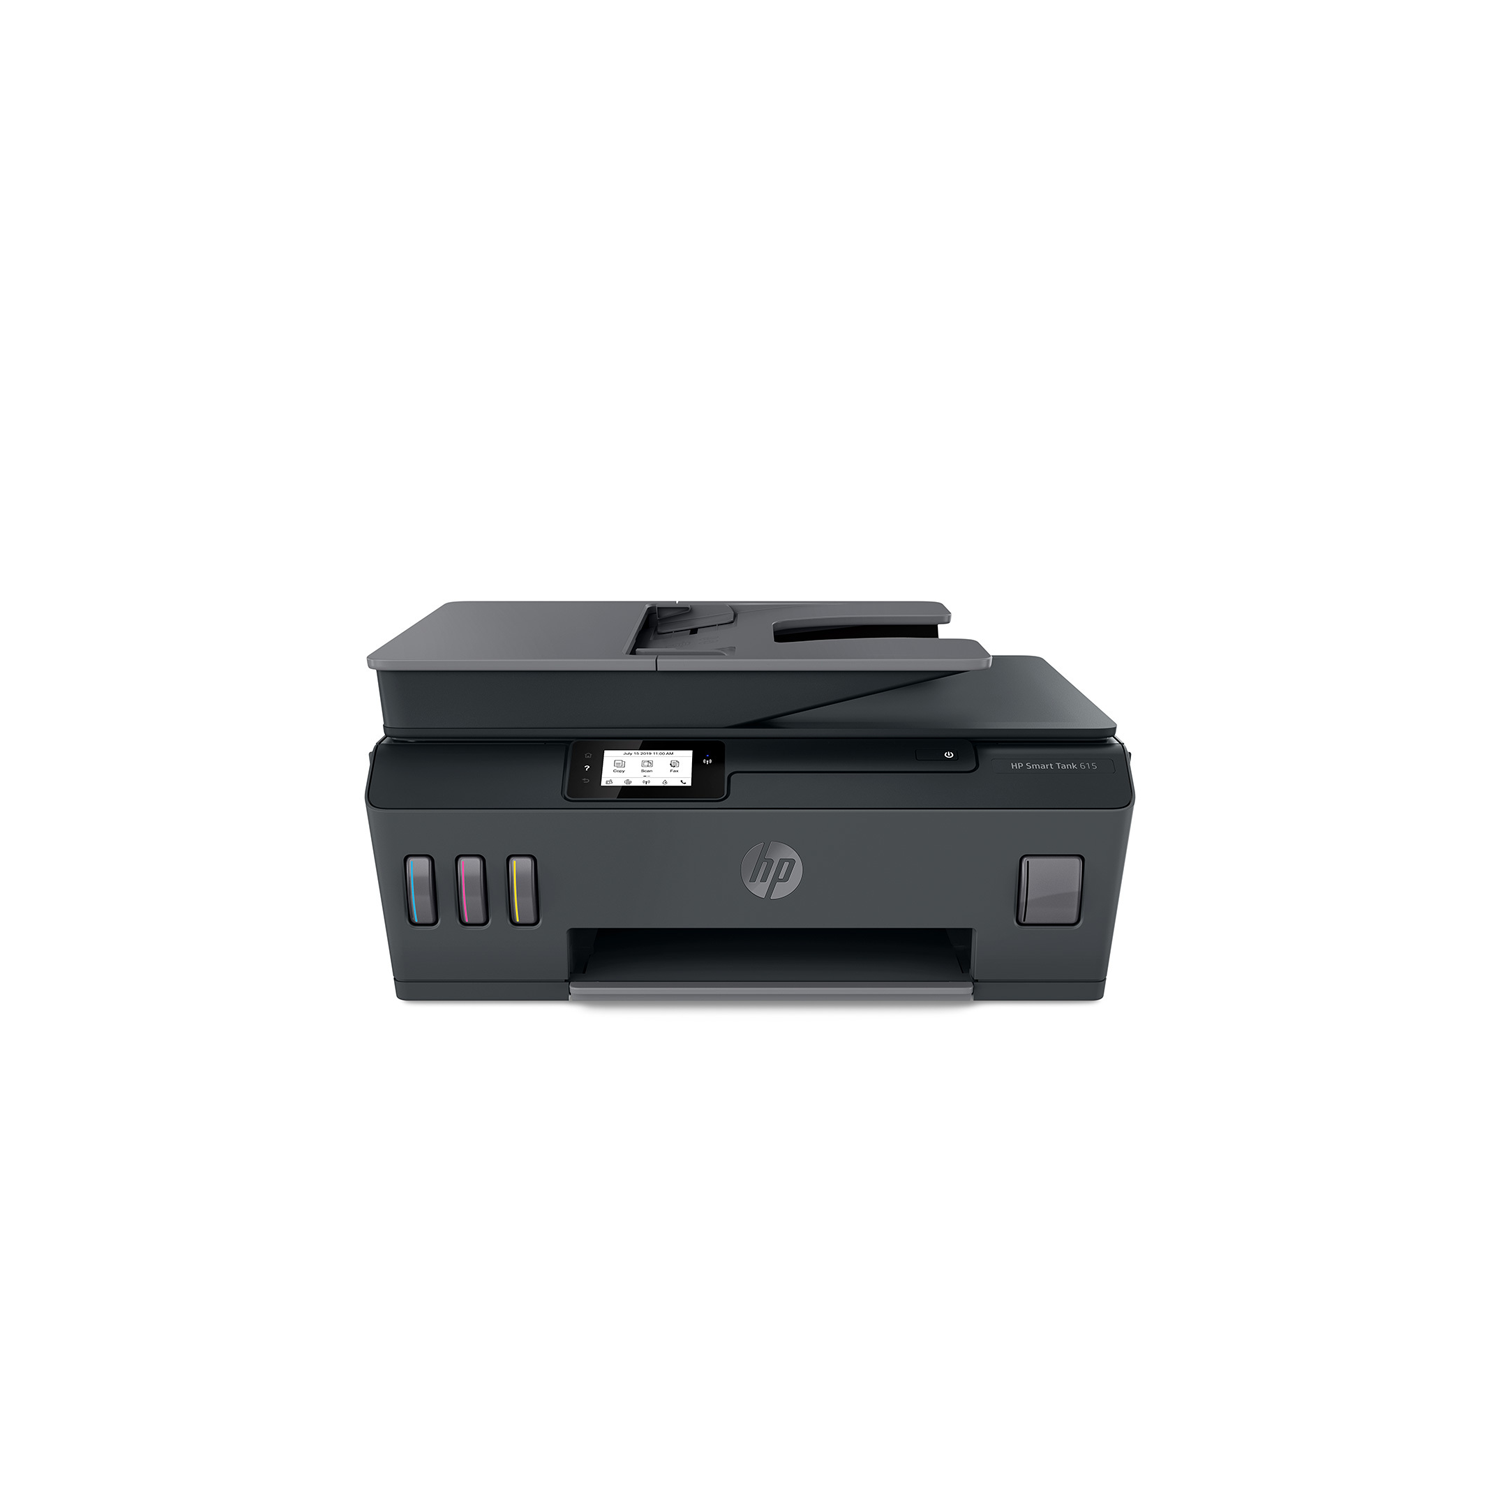 HP Ink Tank 515 AiO WL CISS Printer (Dark+Light Basalt) (Printer)